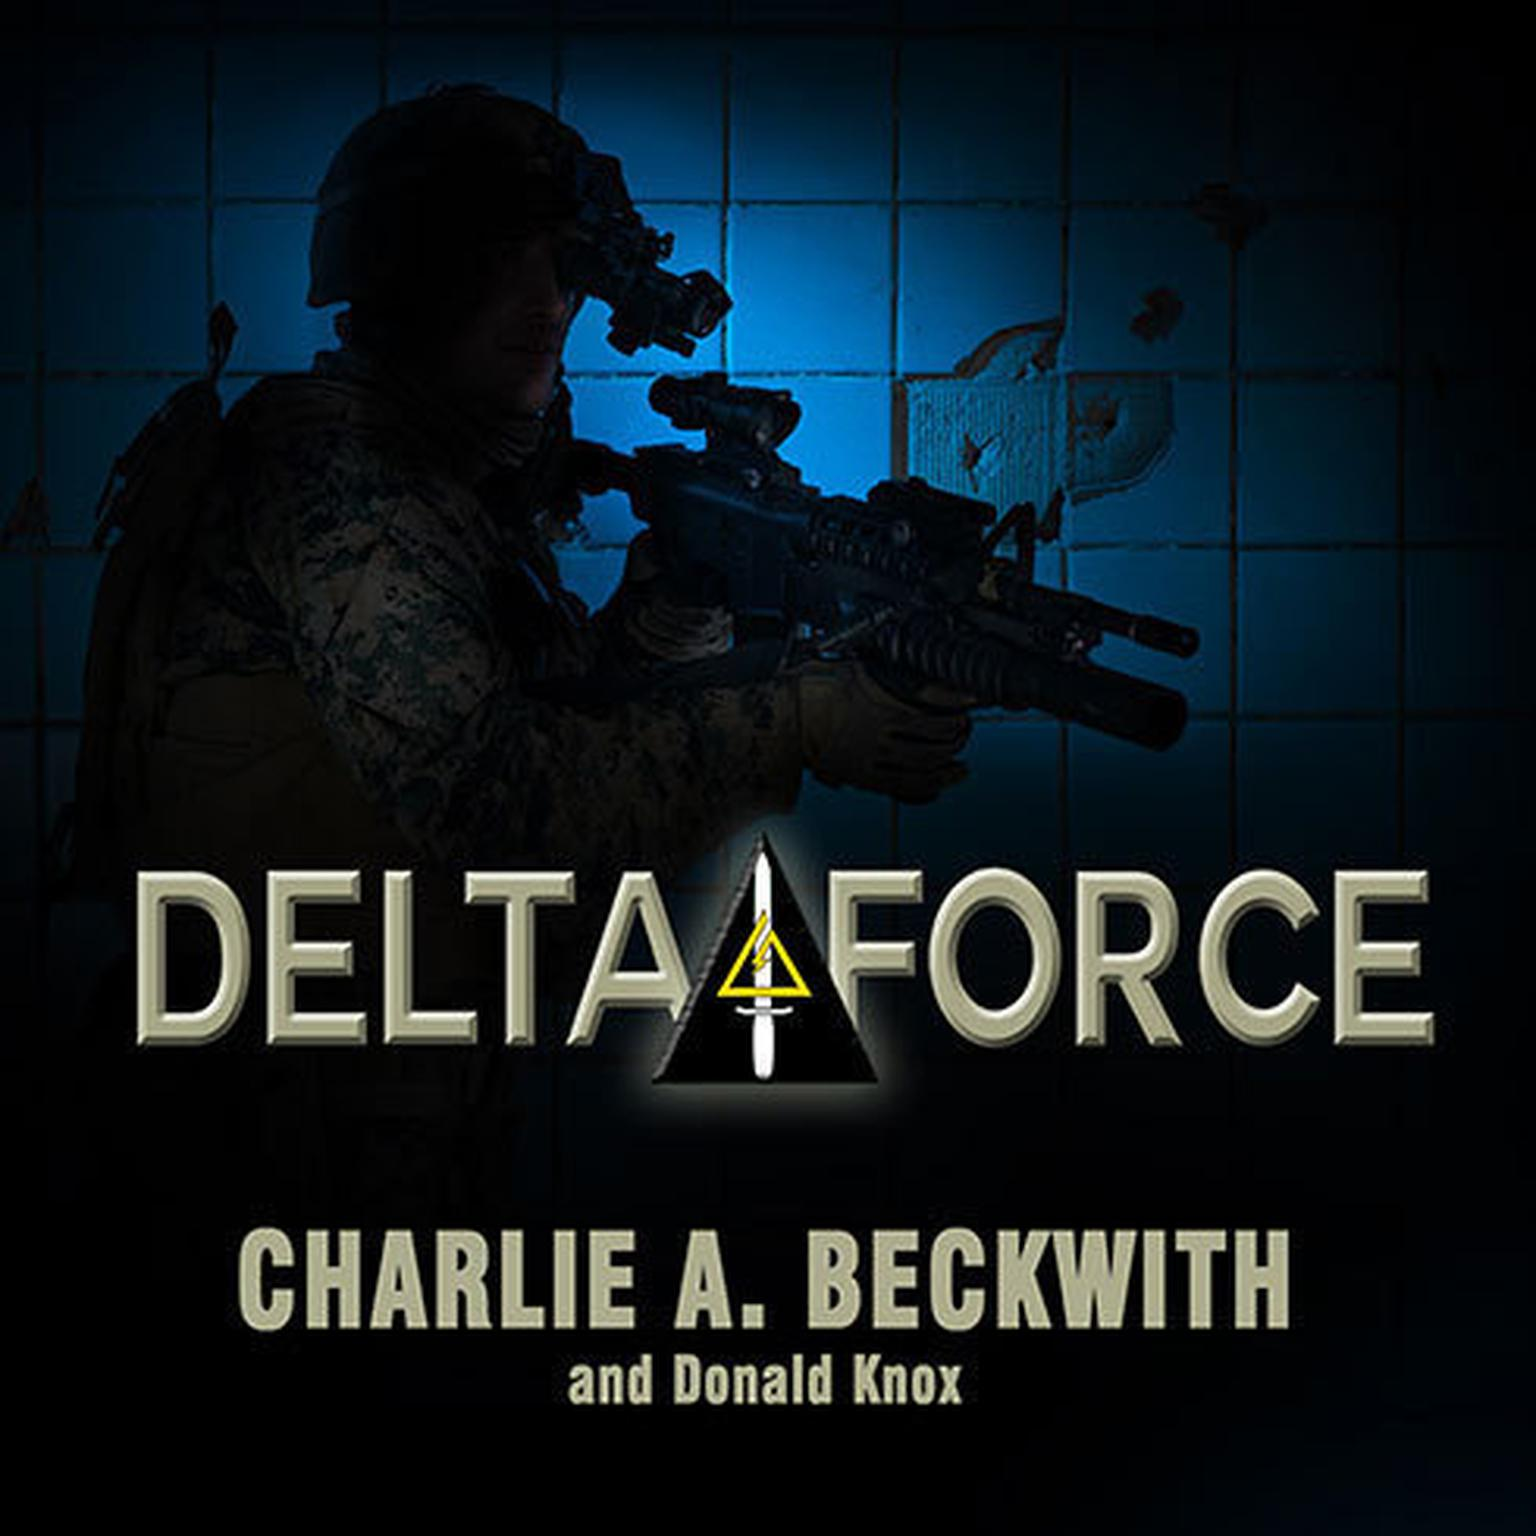 Printable Delta Force: A Memoir by the Founder of the U.S. Military's Most Secretive Special-Operations Unit Audiobook Cover Art